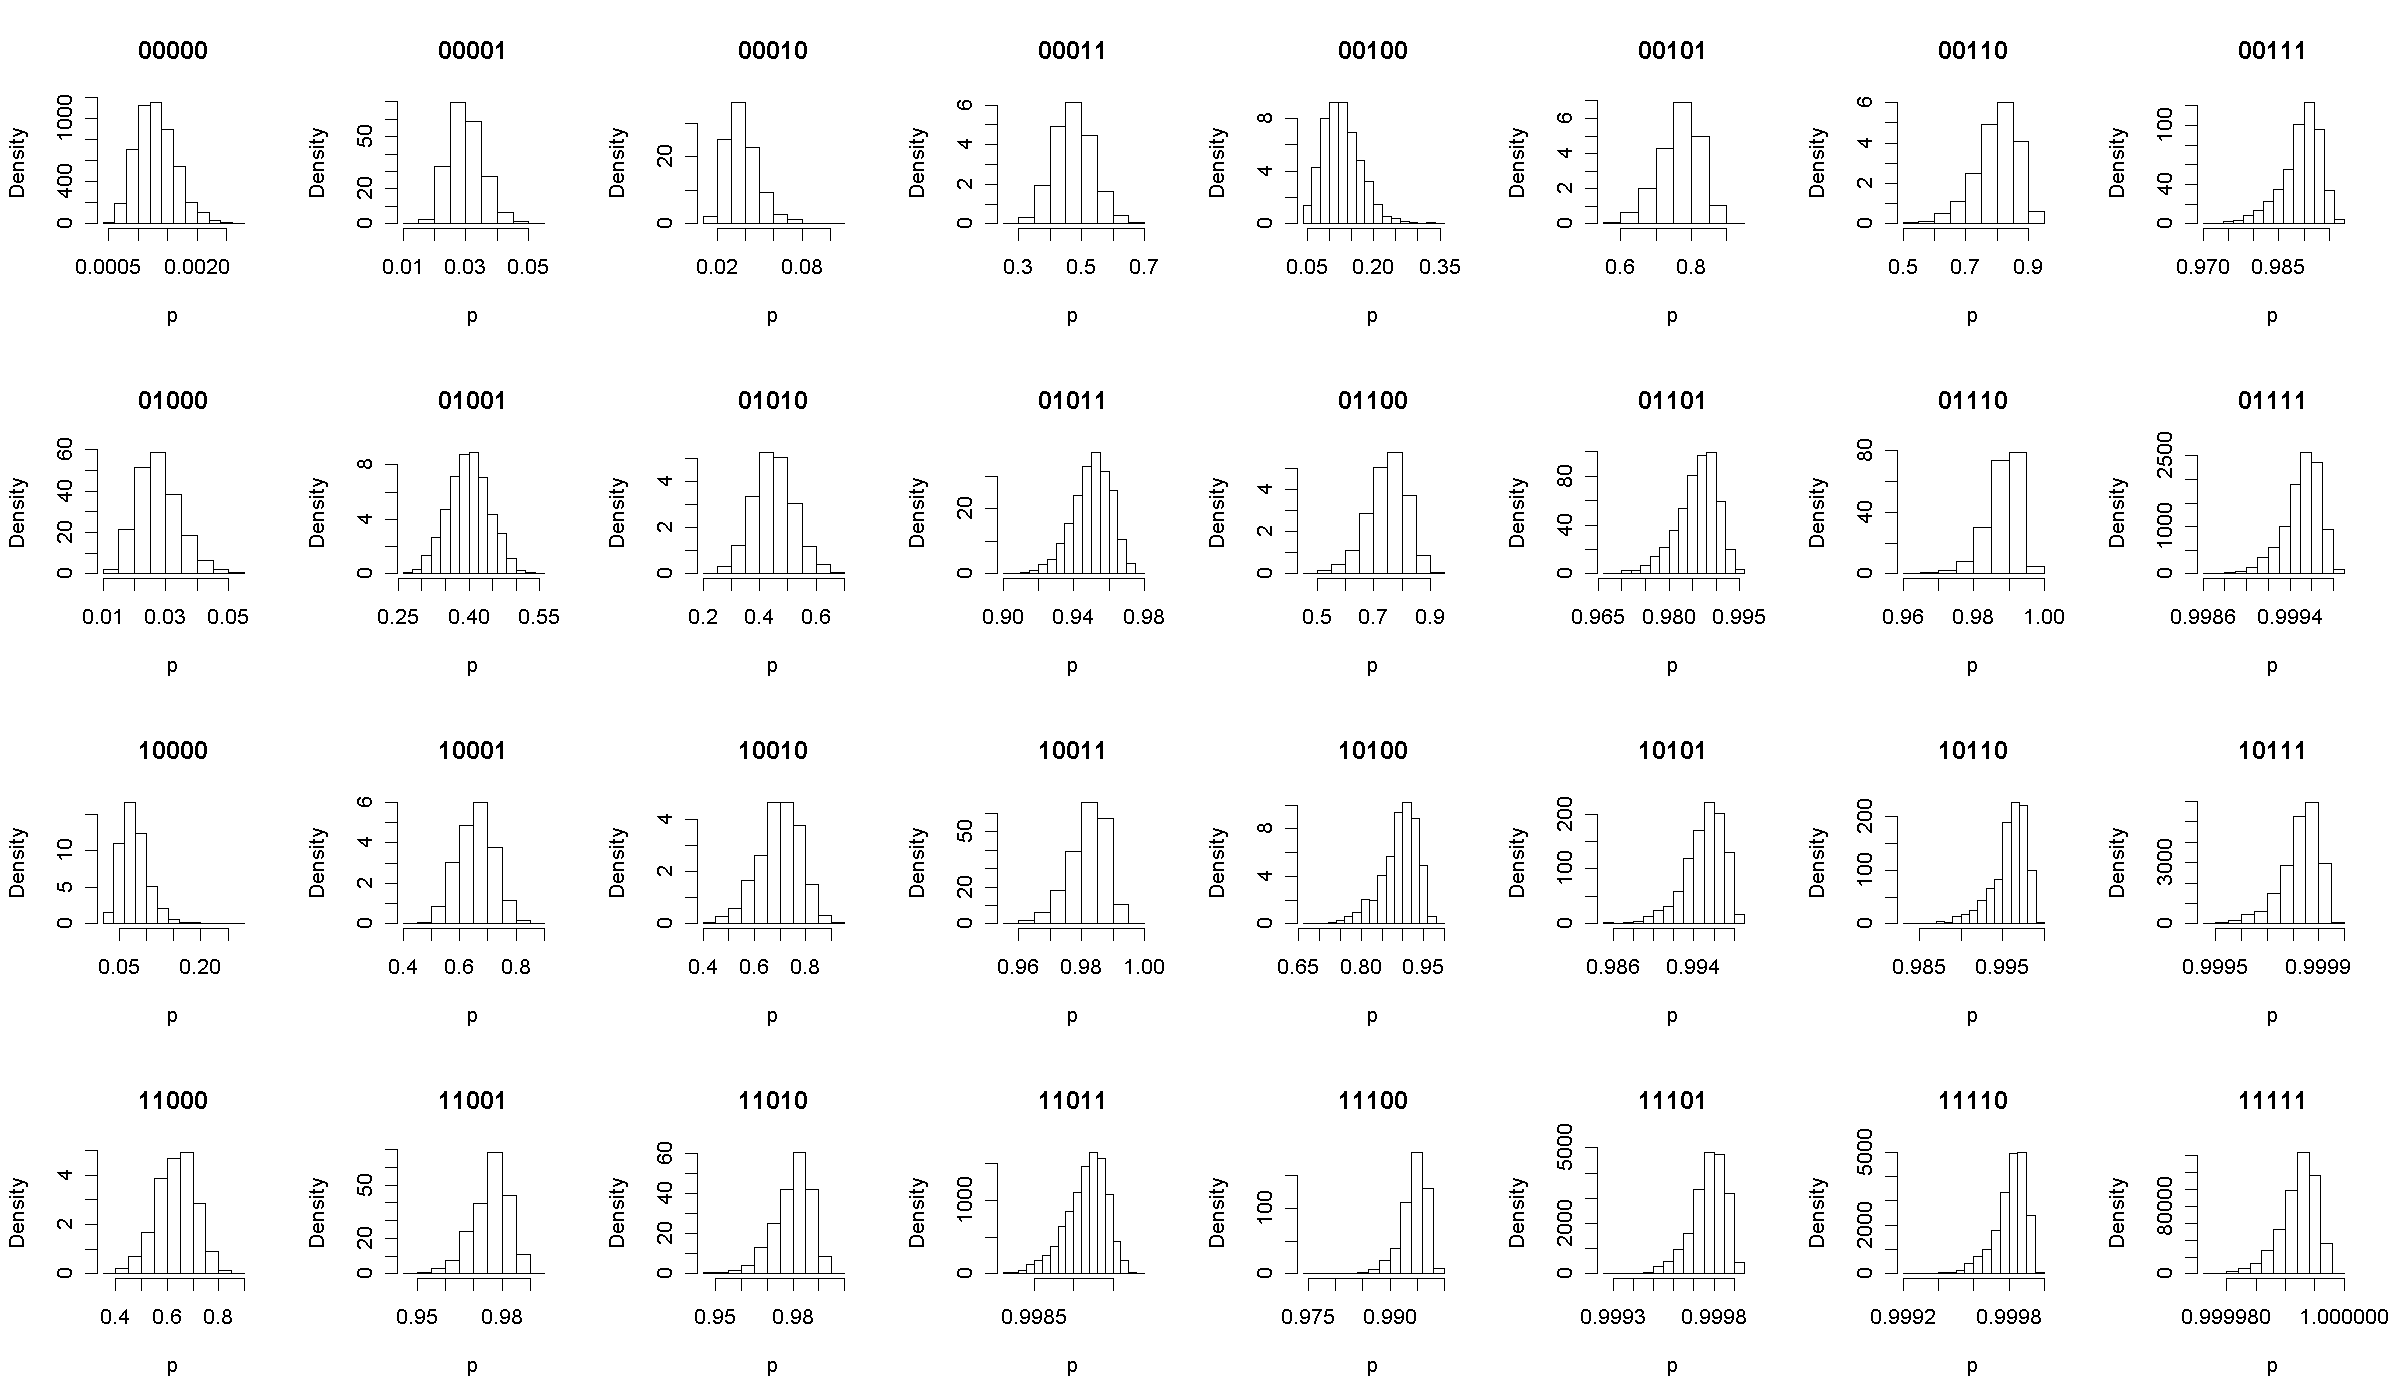 Posterior Category Densities, R default scales